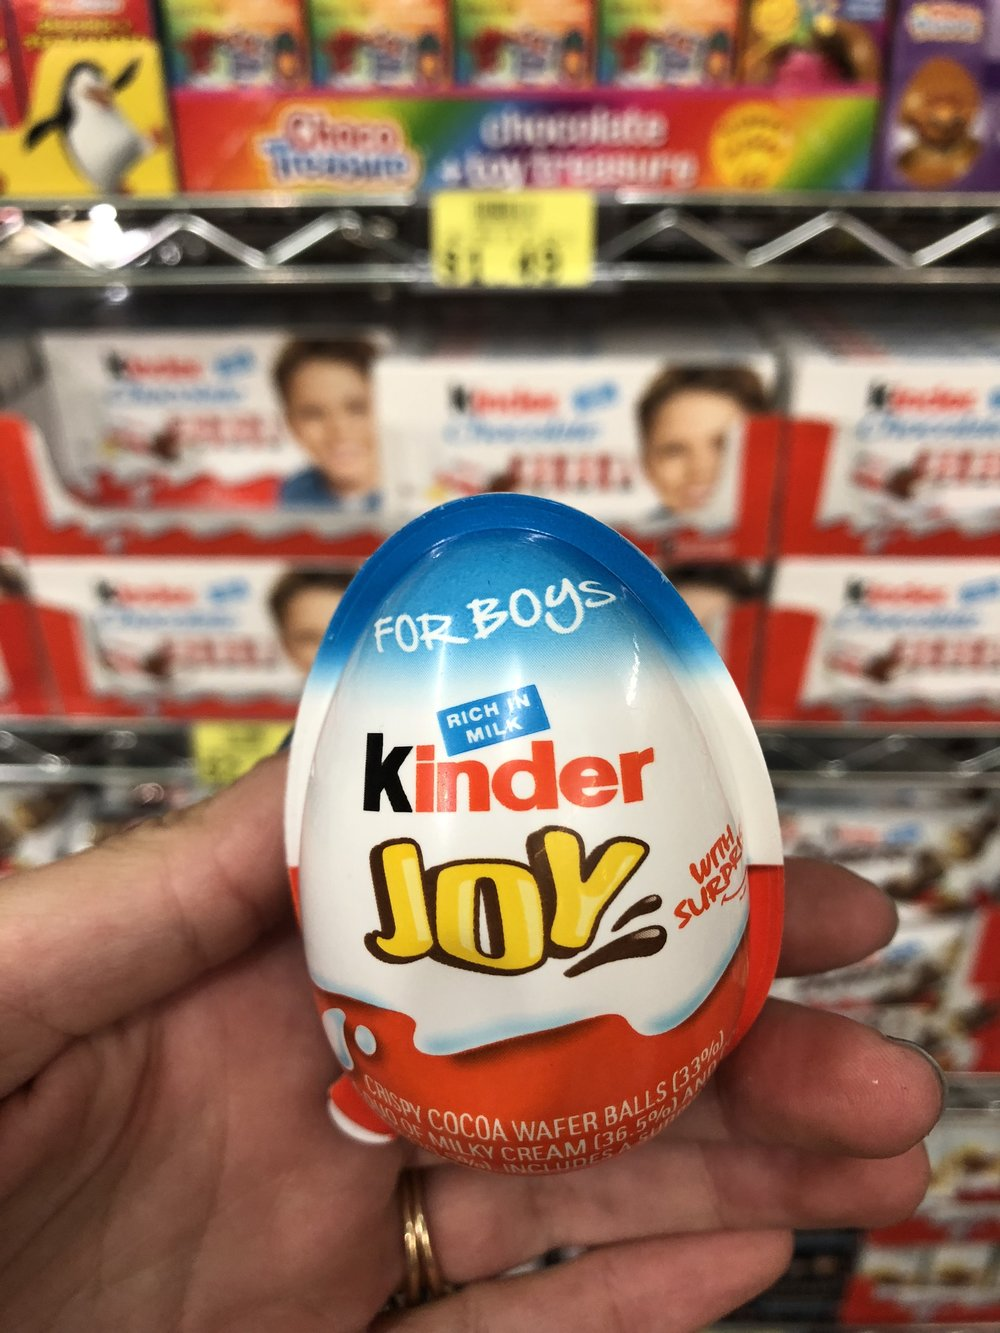 A popular European chocolate for kids